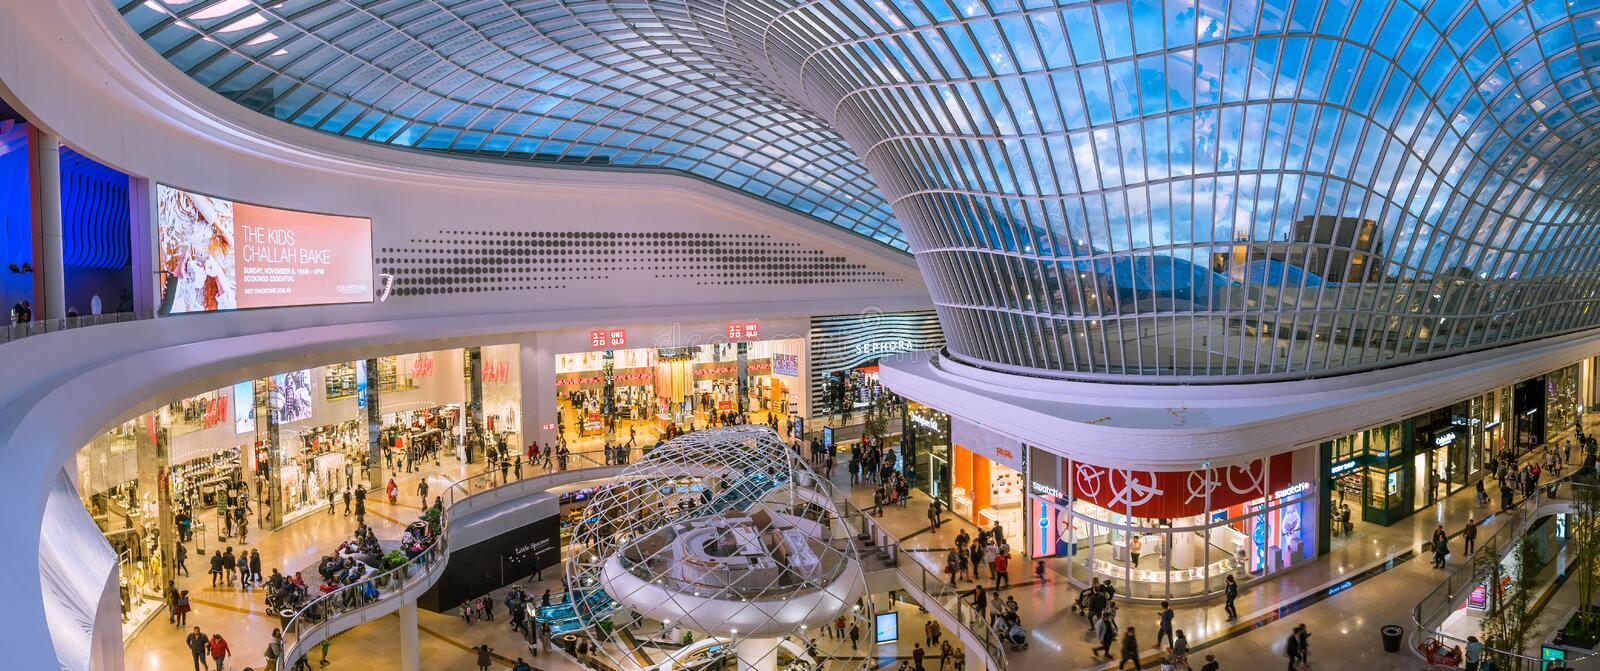 New wing of the Chadstone shopping centre, the largest shopping centre in Australia. Panoramic view of the new wing of the Chadstone shopping centre stock photo